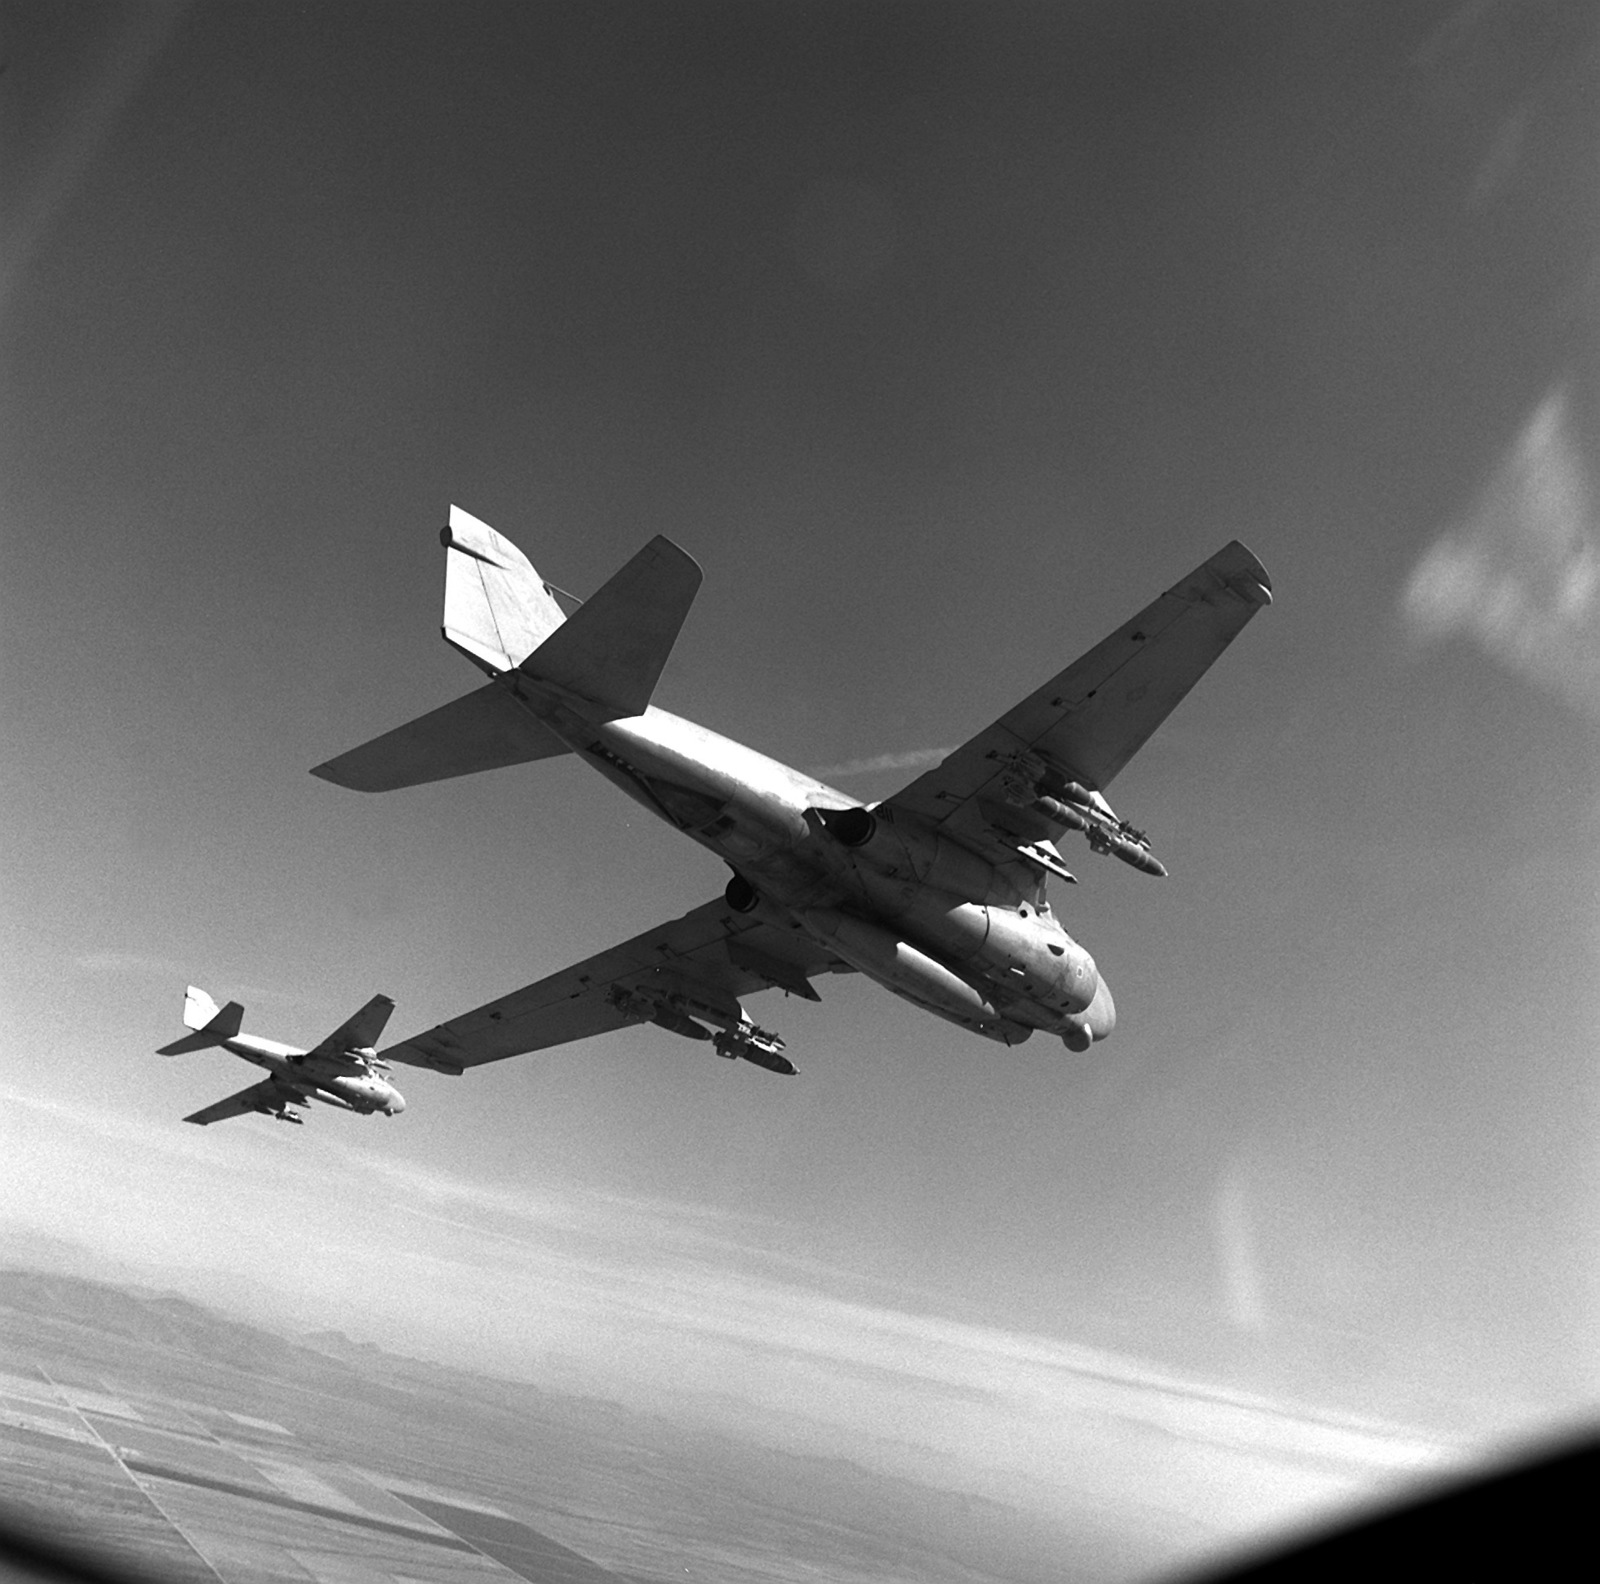 An air-to-air right underside view of two Attack Squadron 128 (VA-128) A6E Intruder aircraft carrying Mark-82 500-pound bombs. The aircraft are en route Naval Air Facility, El Centro, Calif